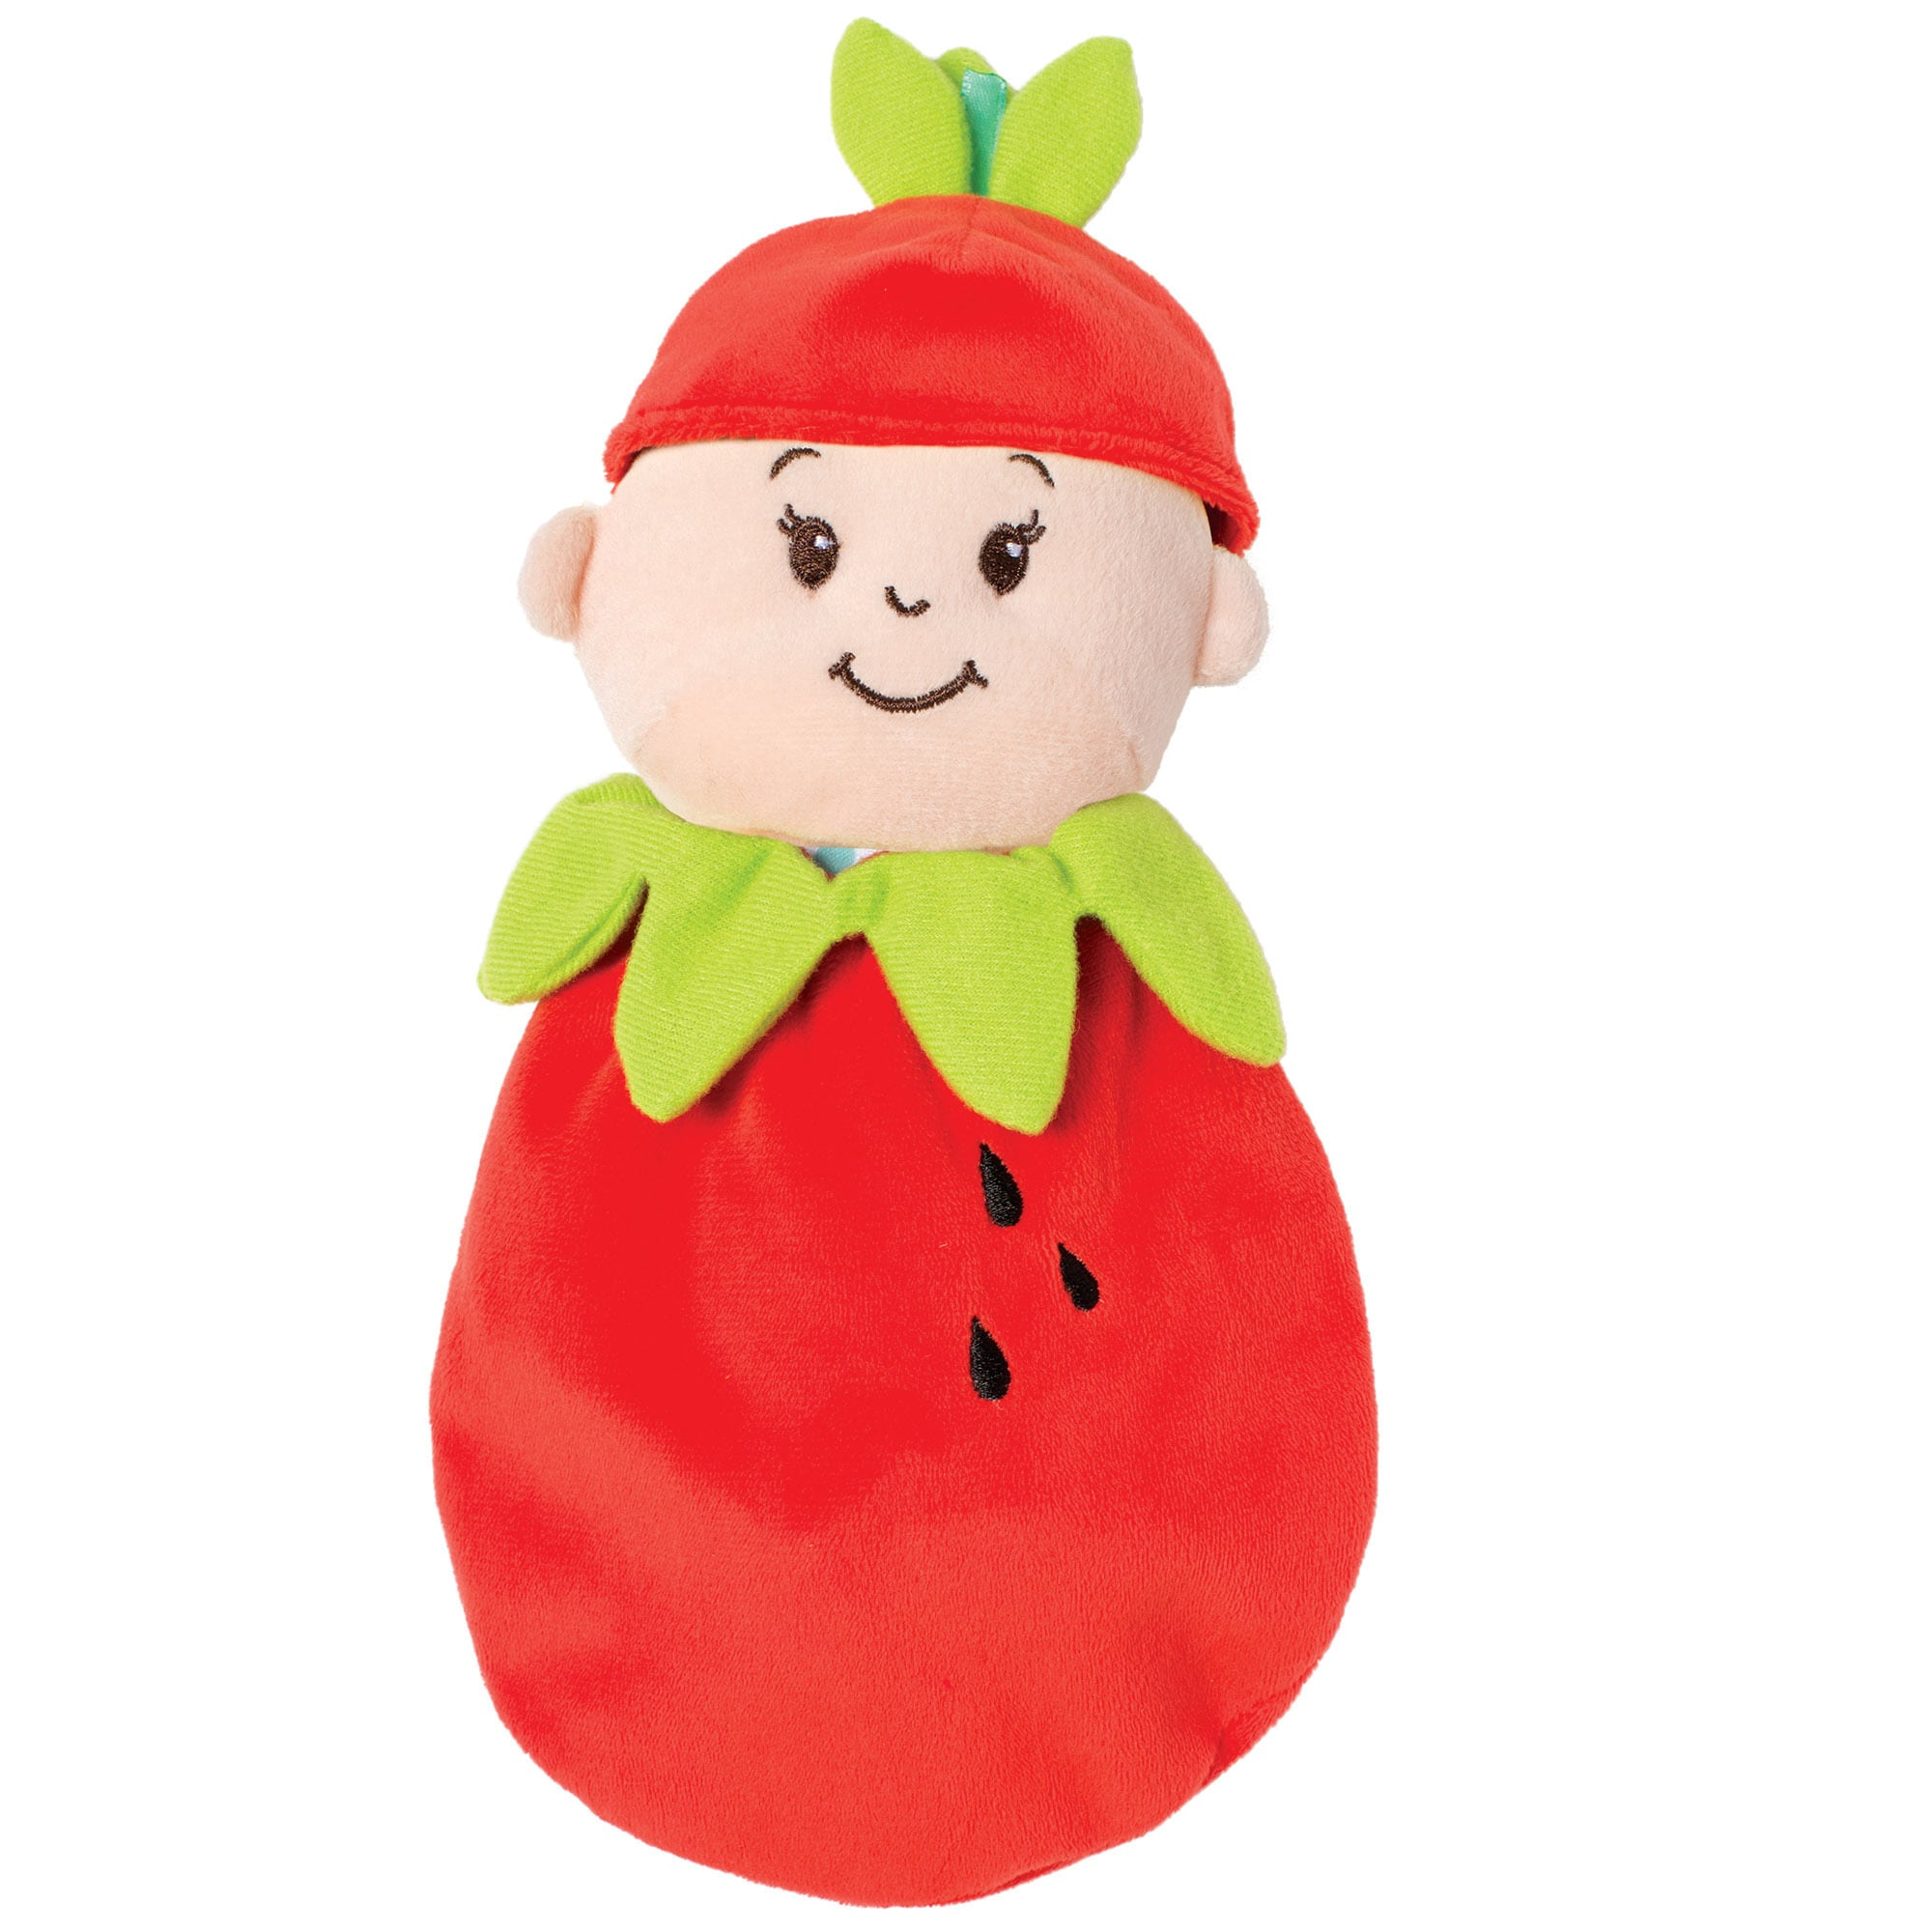 Manhattan Toy Wee Baby Stella Snuggle Strawberry Cotton D...